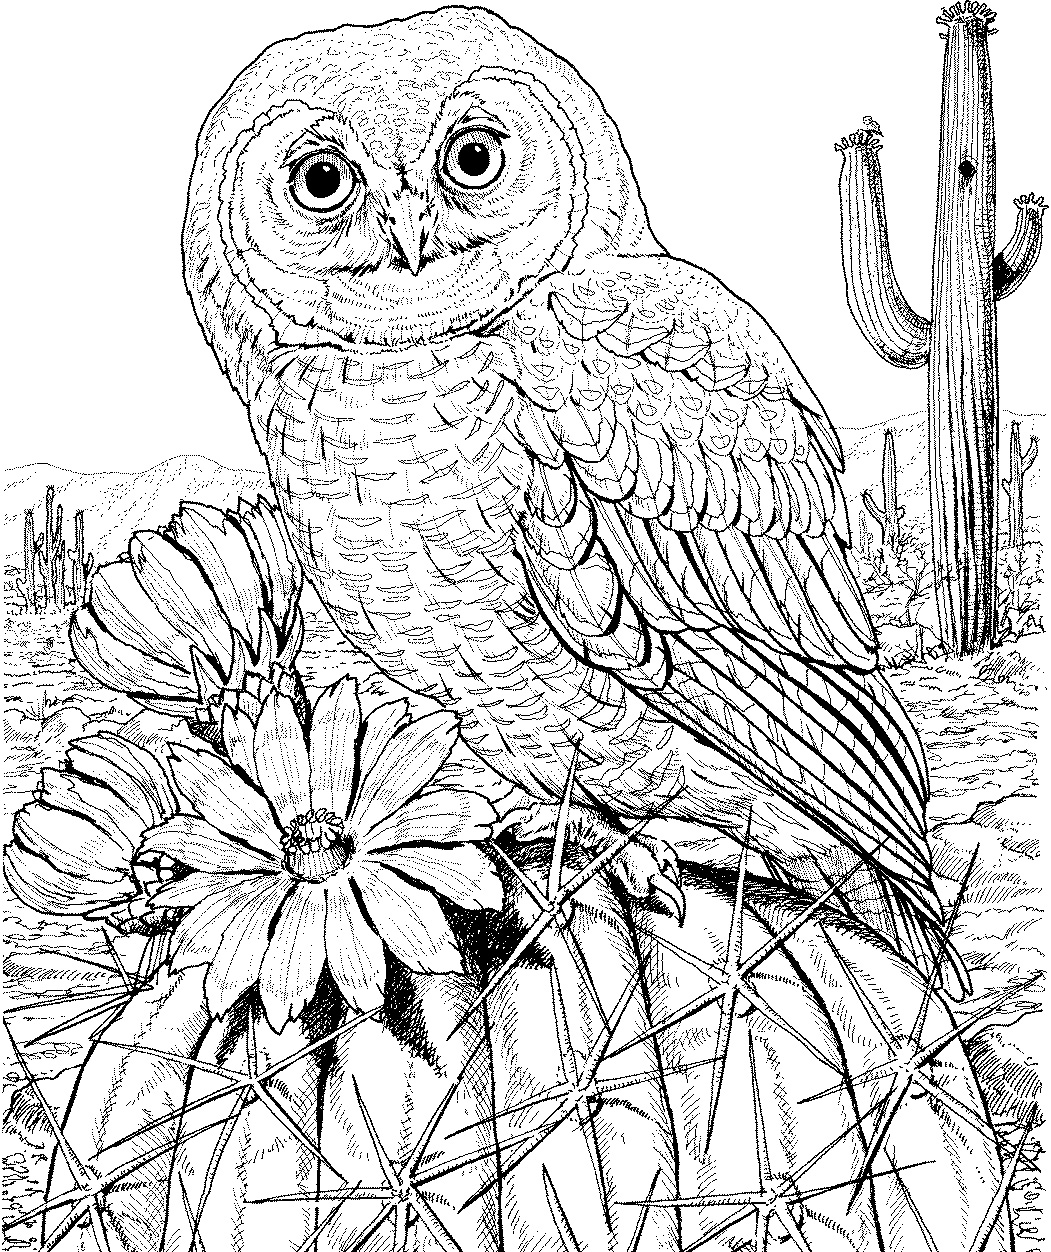 coloring pages for adults owls free book owl owls adult coloring pages owls coloring adults for pages